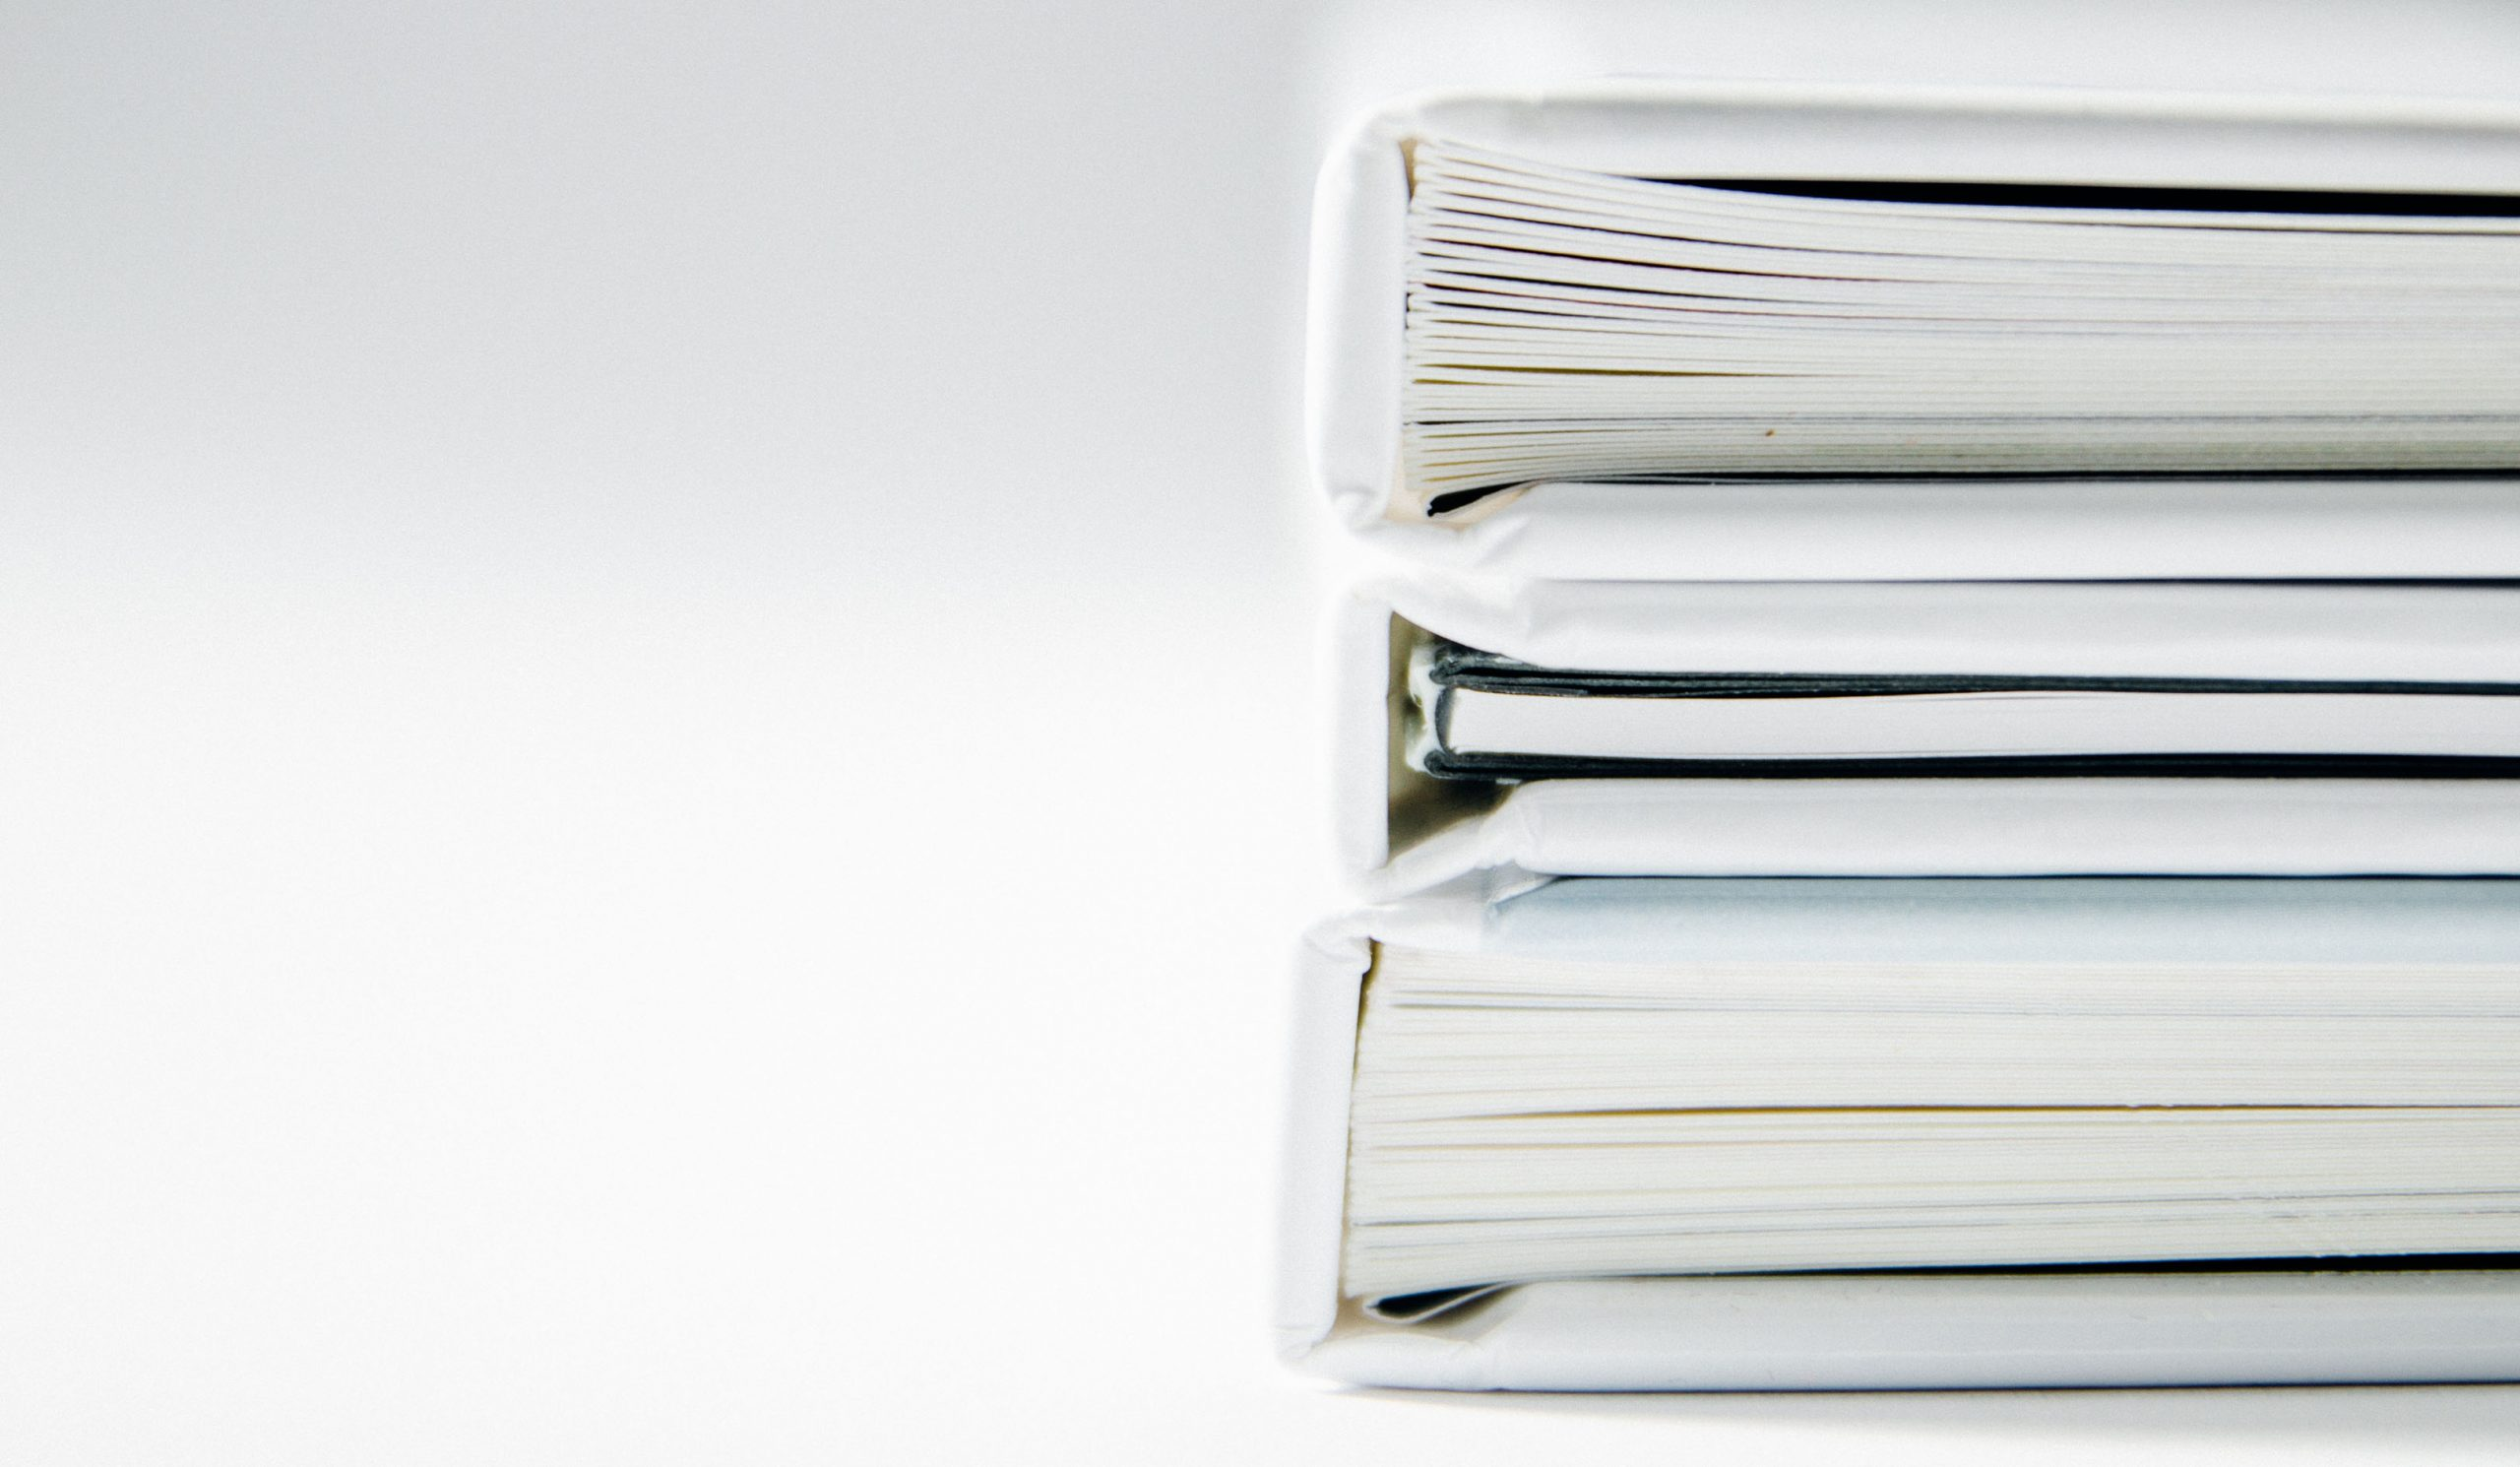 Updating of criteria for scheduling field tax audits